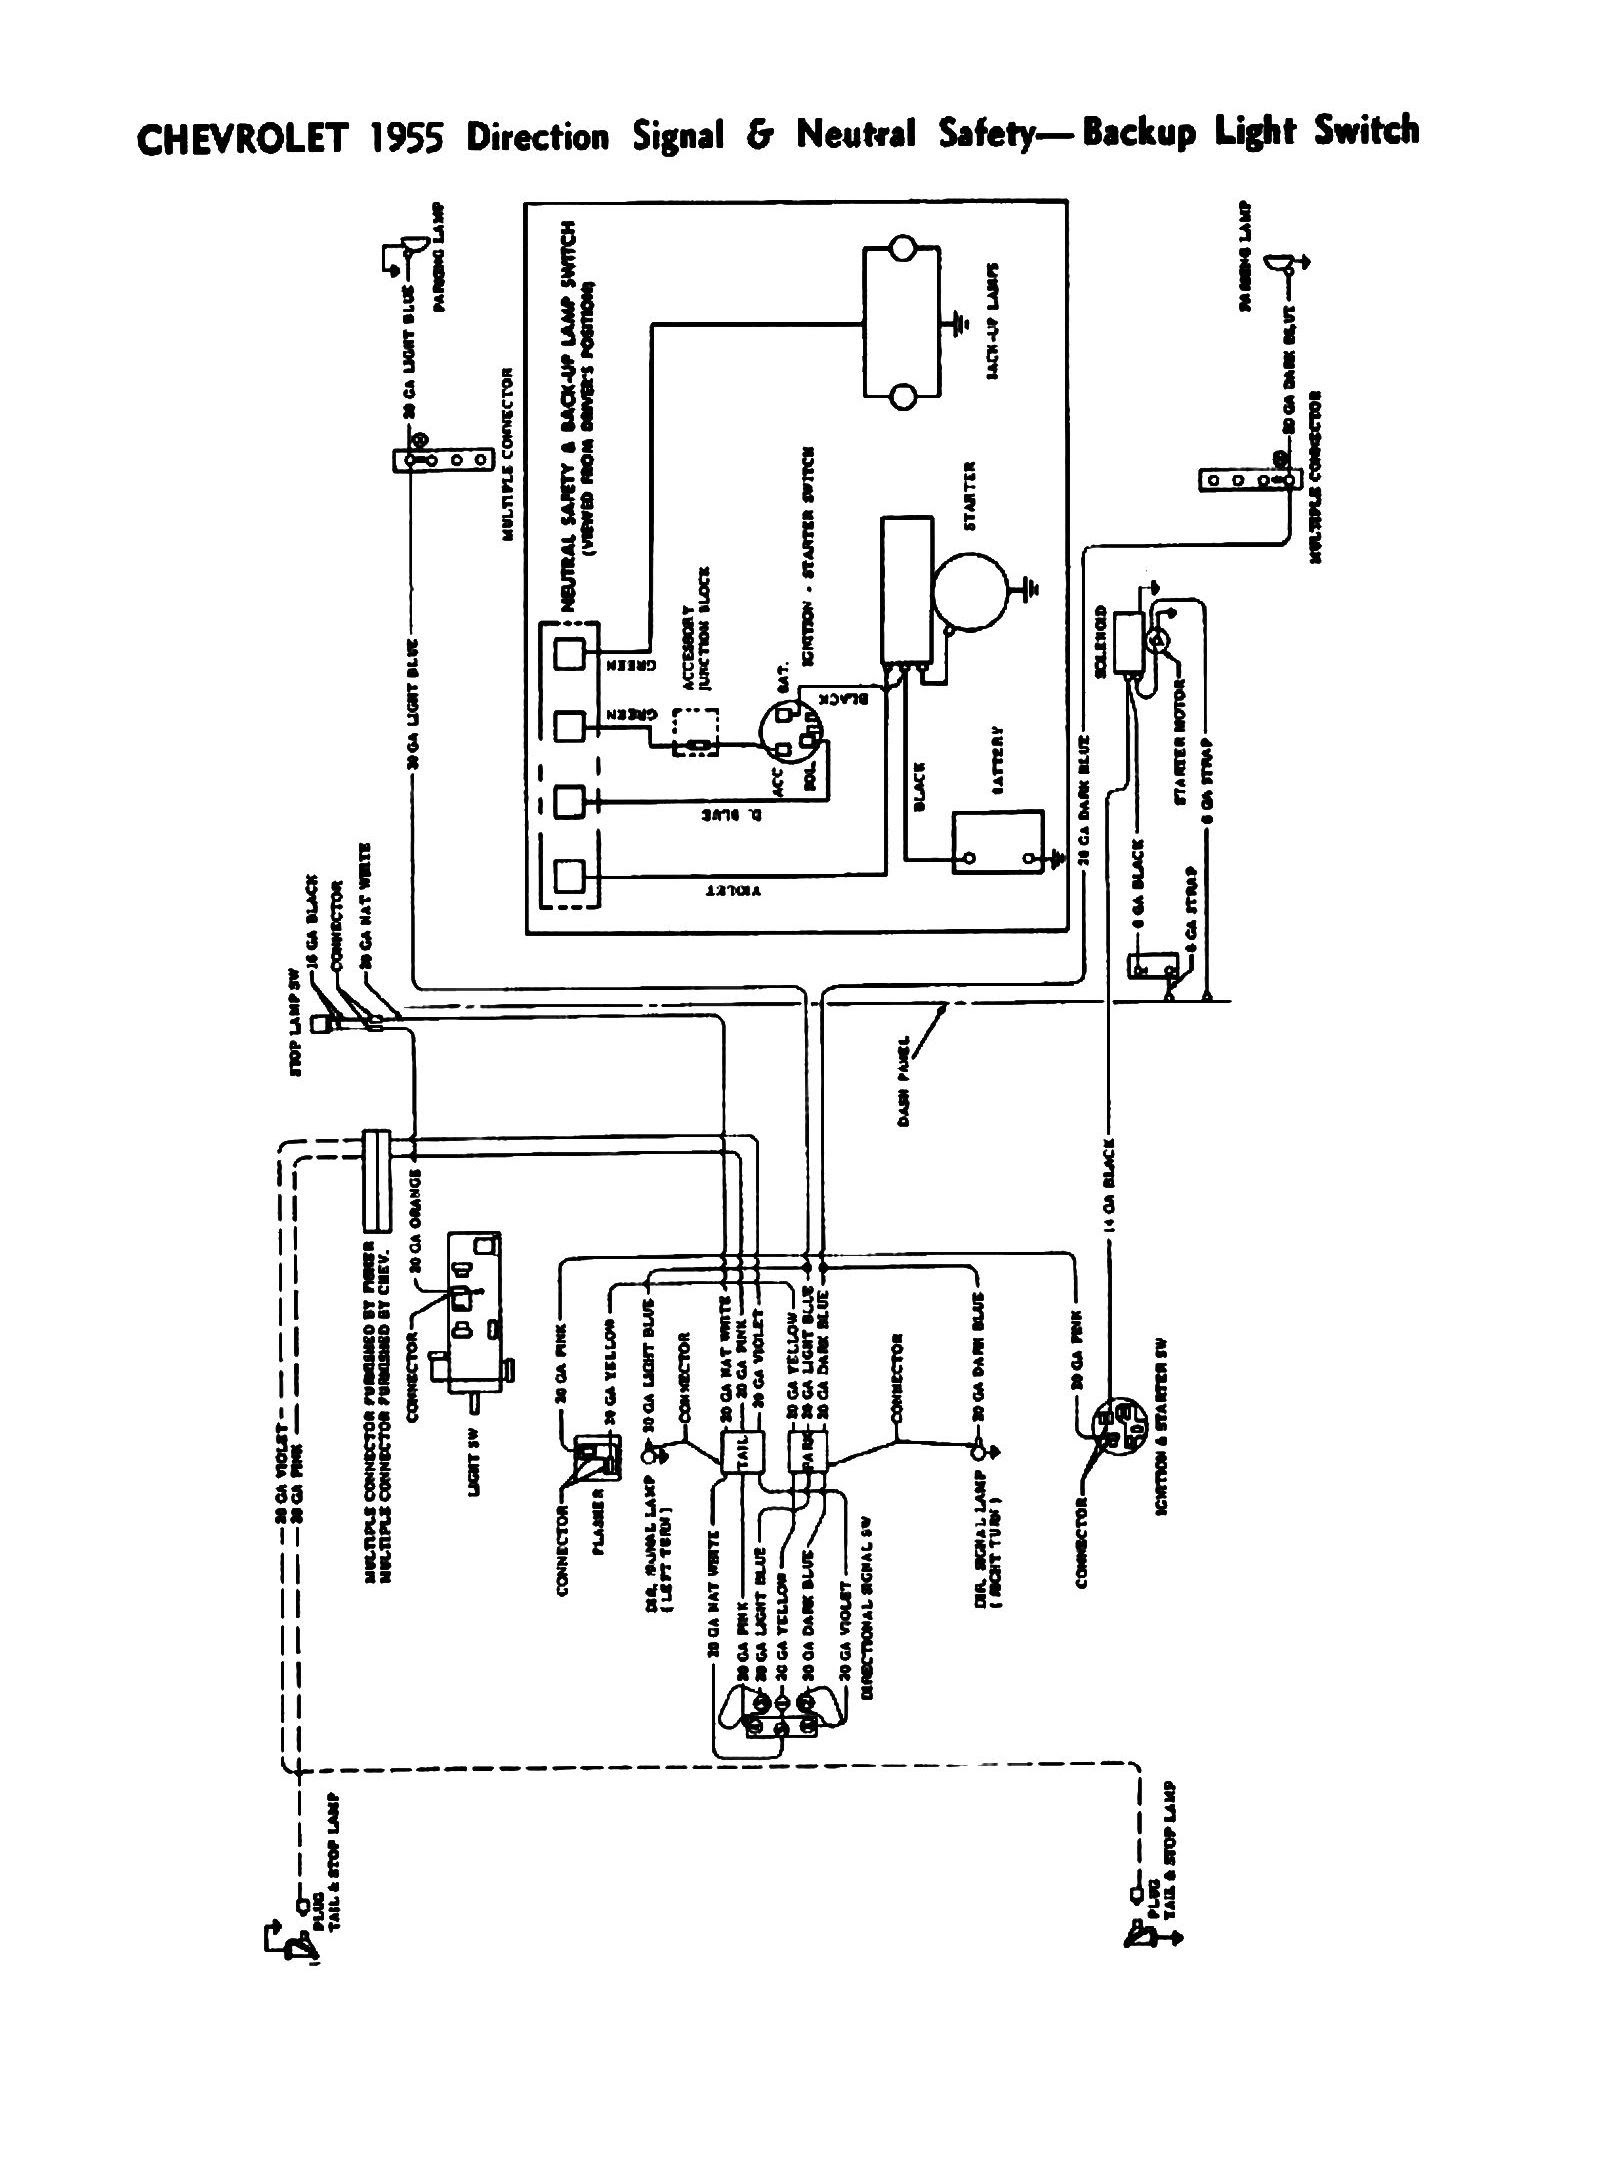 Wiring Diagram For K5 Blazer